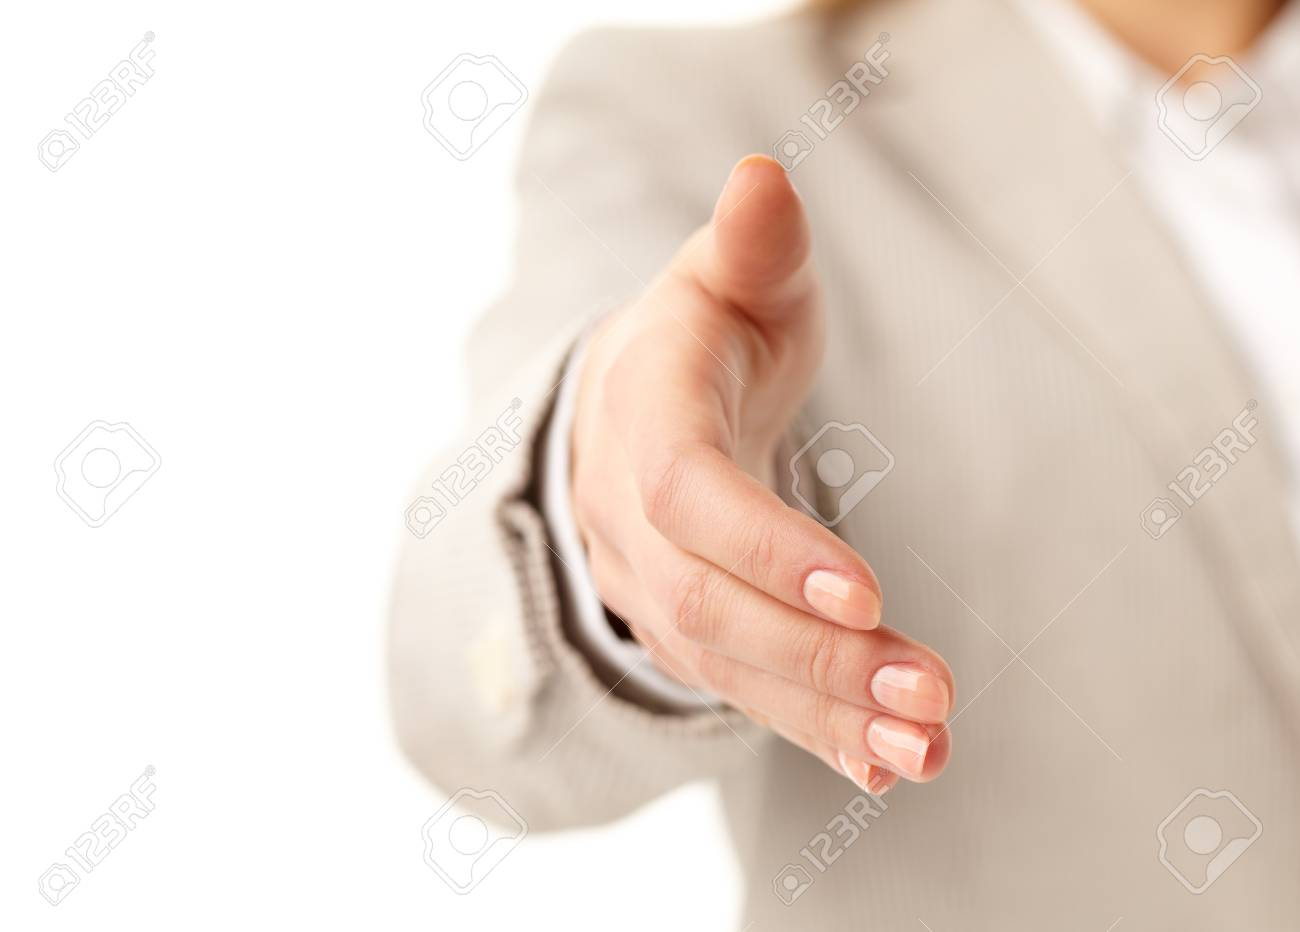 Image of female giving her hand for a handshake Stock Photo - 11426009